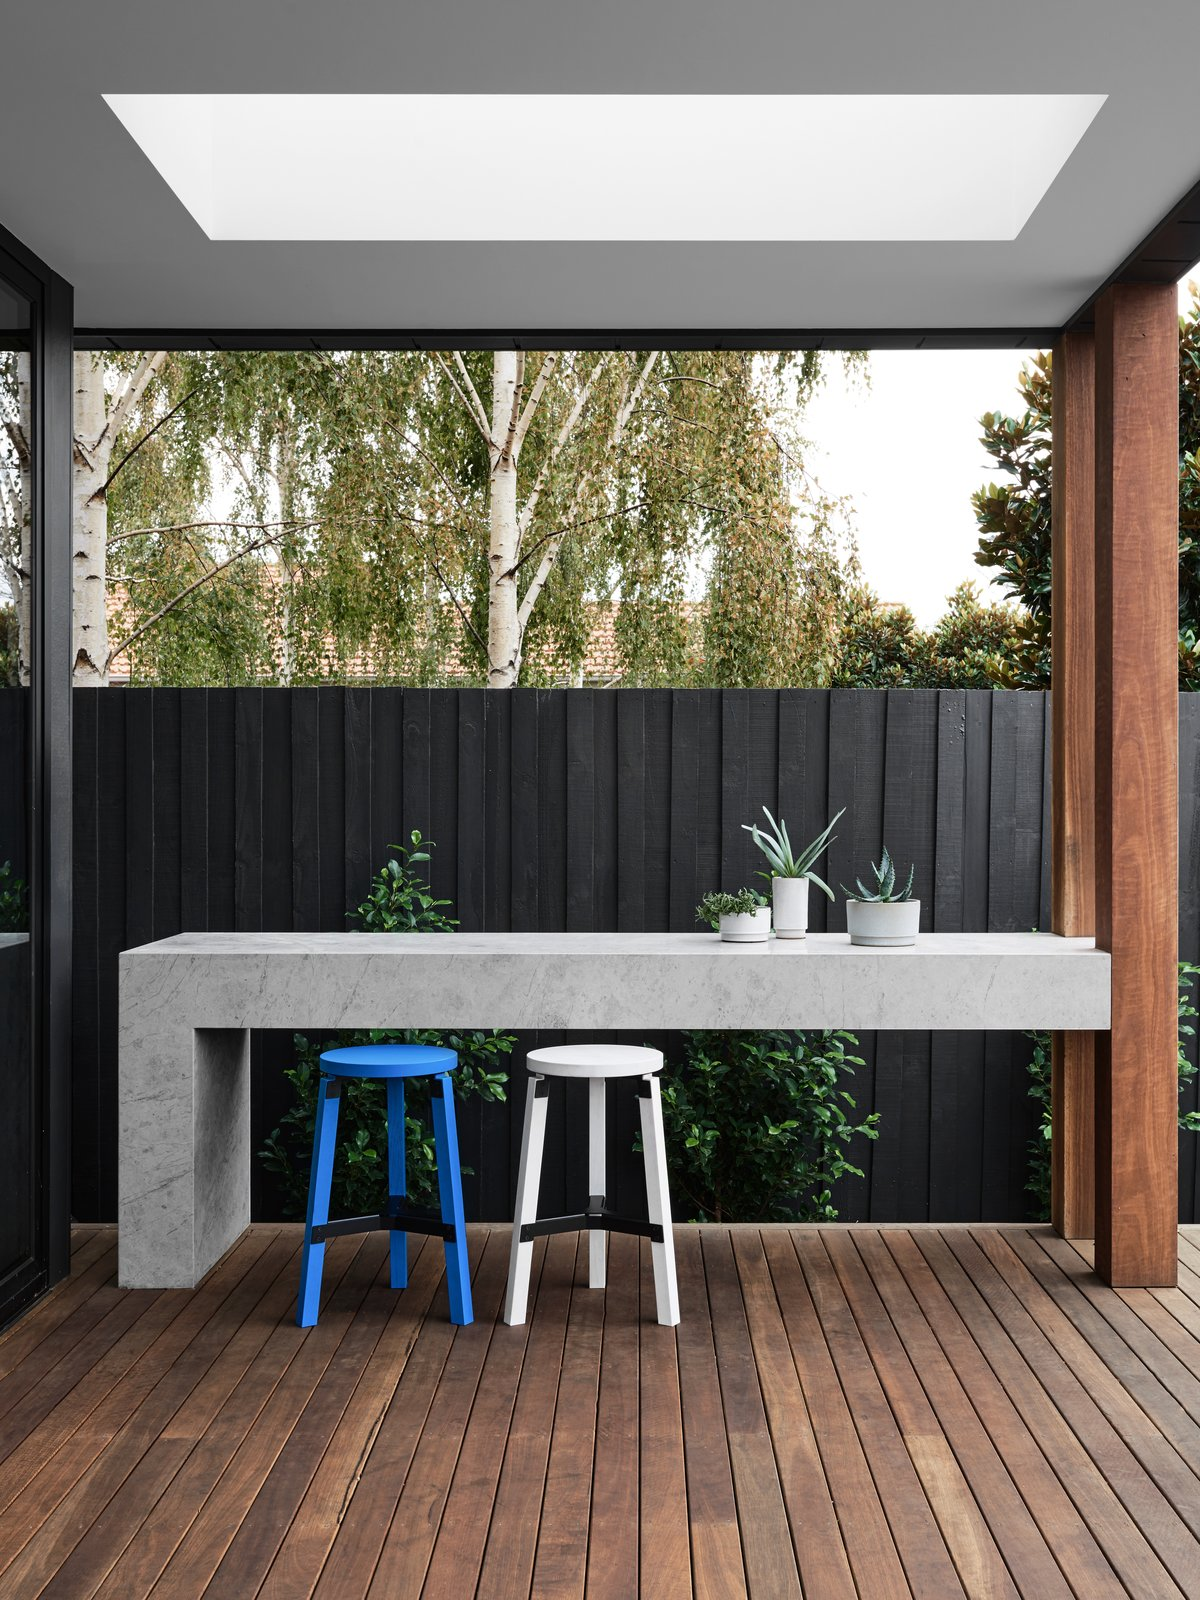 Outdoor, Back Yard, Trees, Decking Patio, Porch, Deck, Wood Patio, Porch, Deck, Vertical Fences, Wall, and Wood Fences, Wall  Photo 4 of 10 in A Run-Down Melbourne Bungalow's Makeover Embraces Light and Family Life